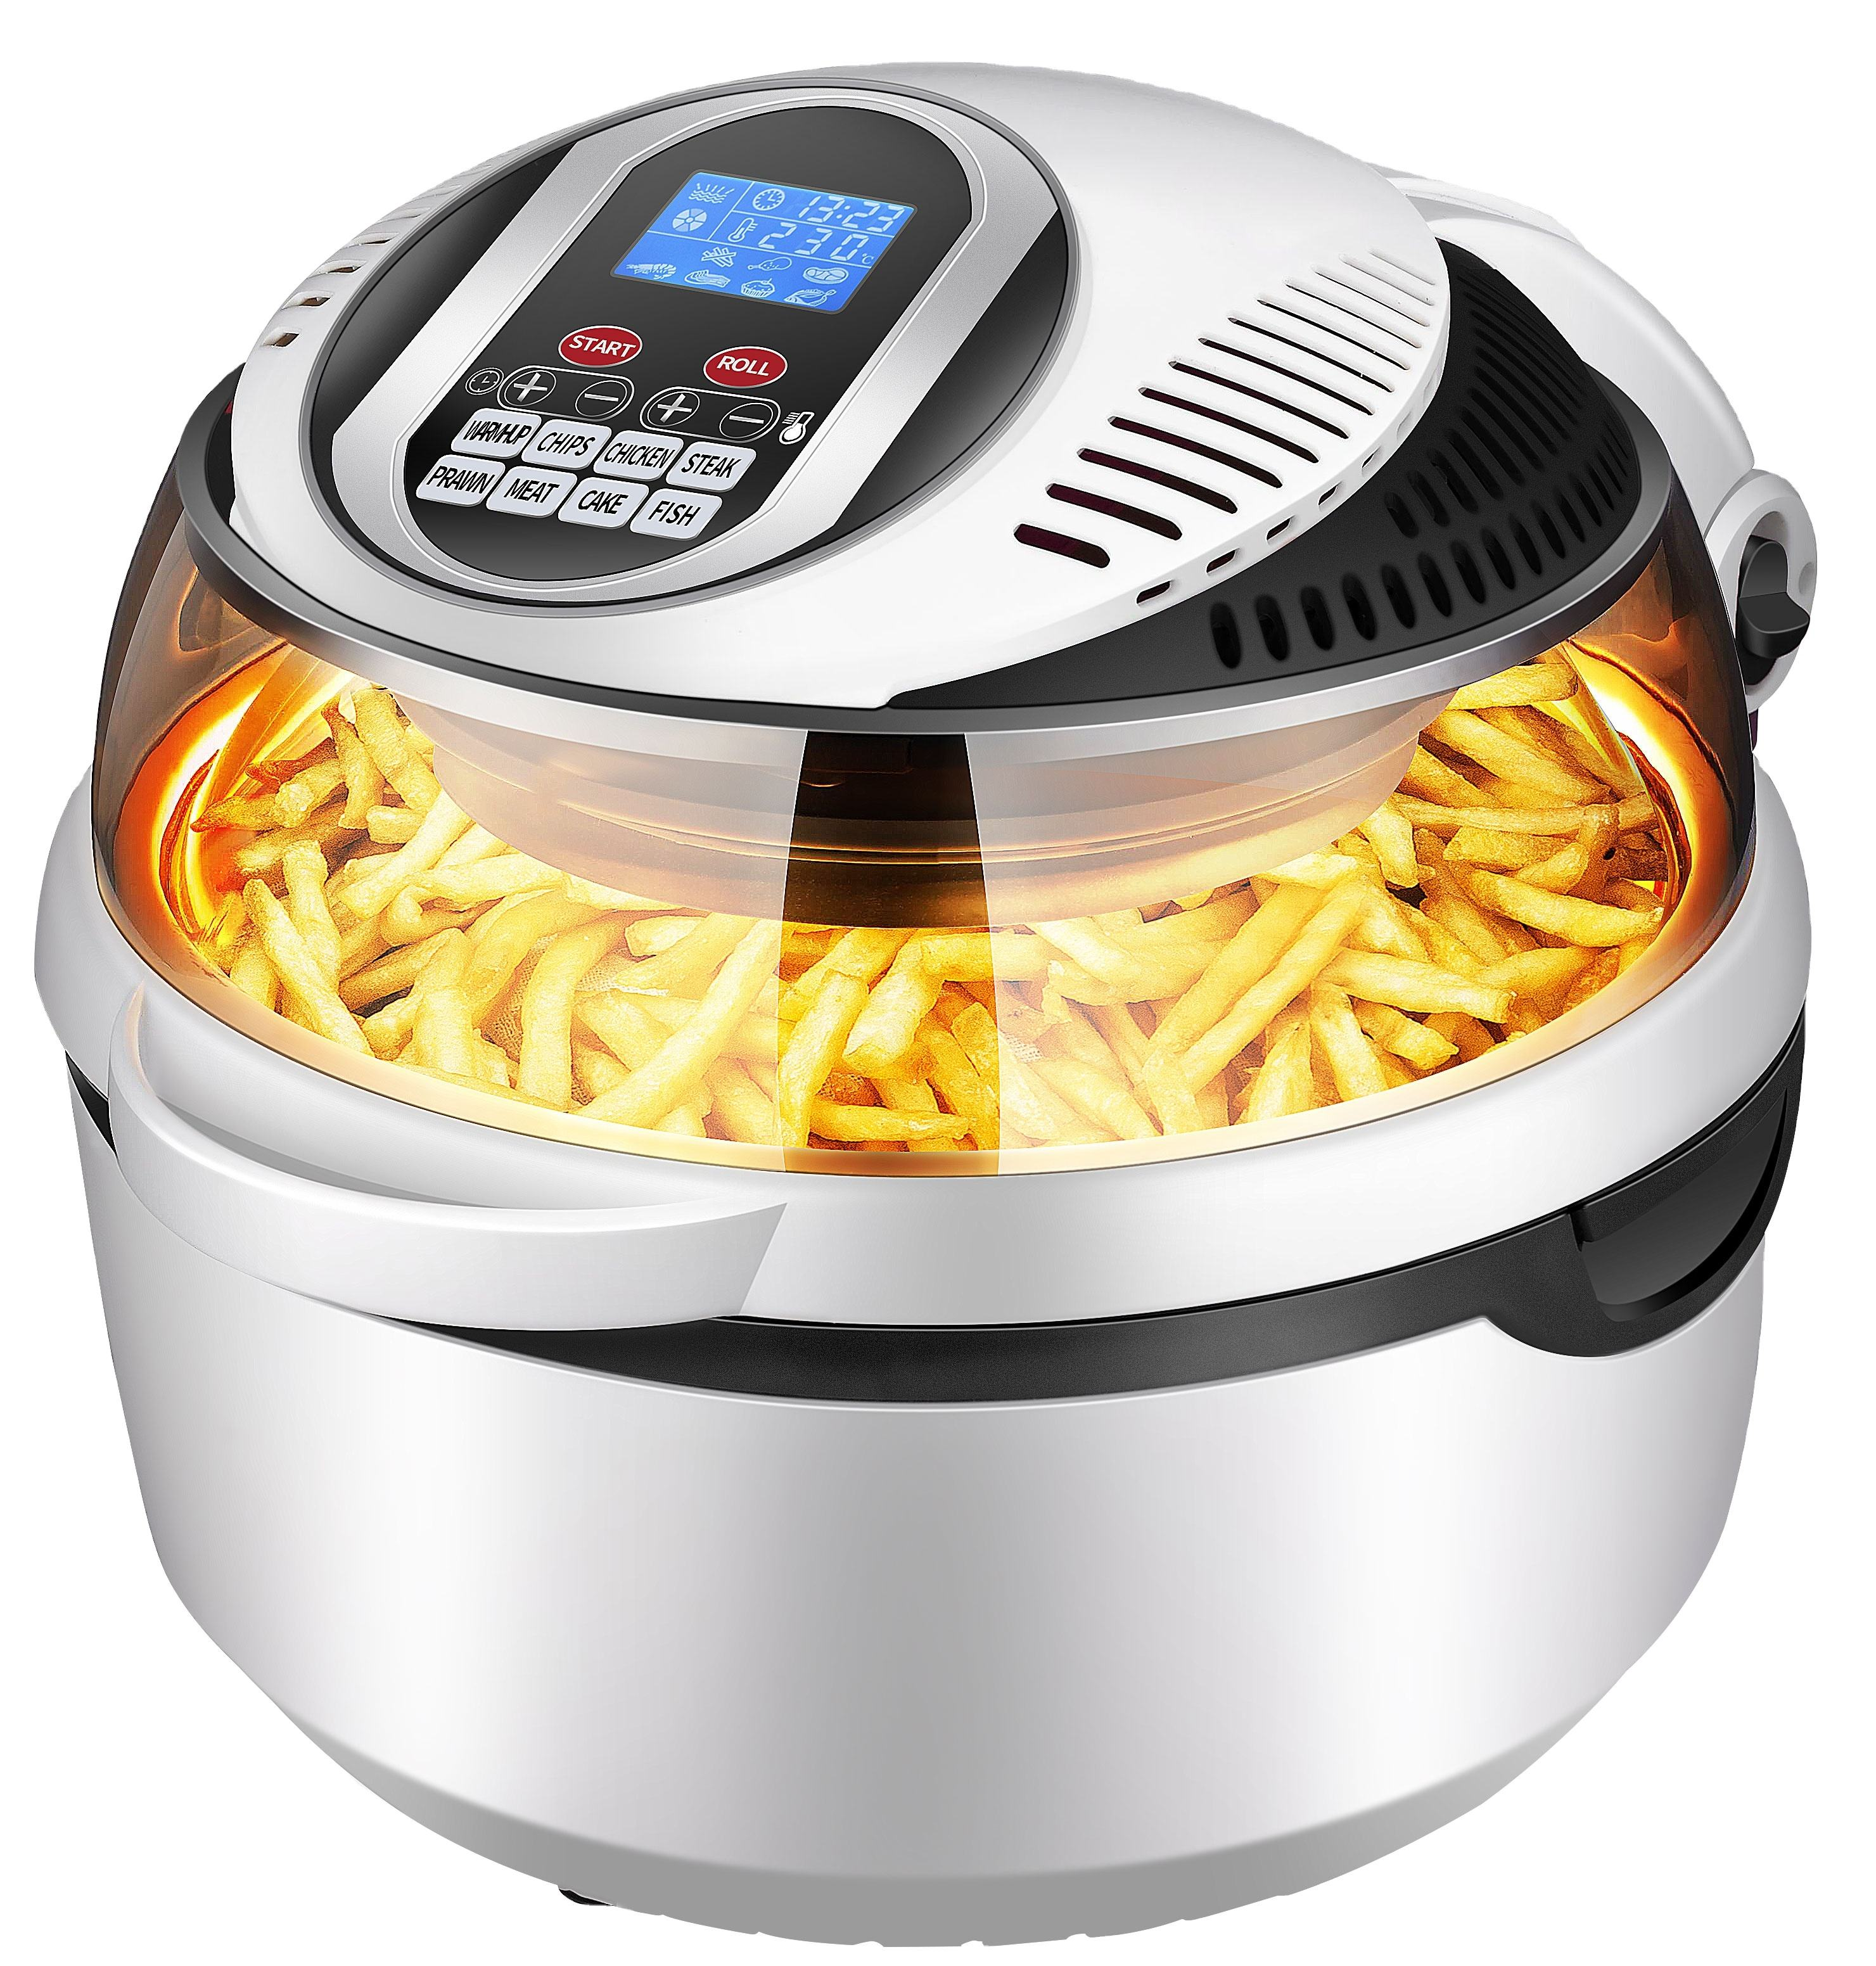 TURBOFRY OVEN 12L WITH AIRFRYS BAKES ROASTS GRILLS OIL FREE ELECTRIC AIR FRYER